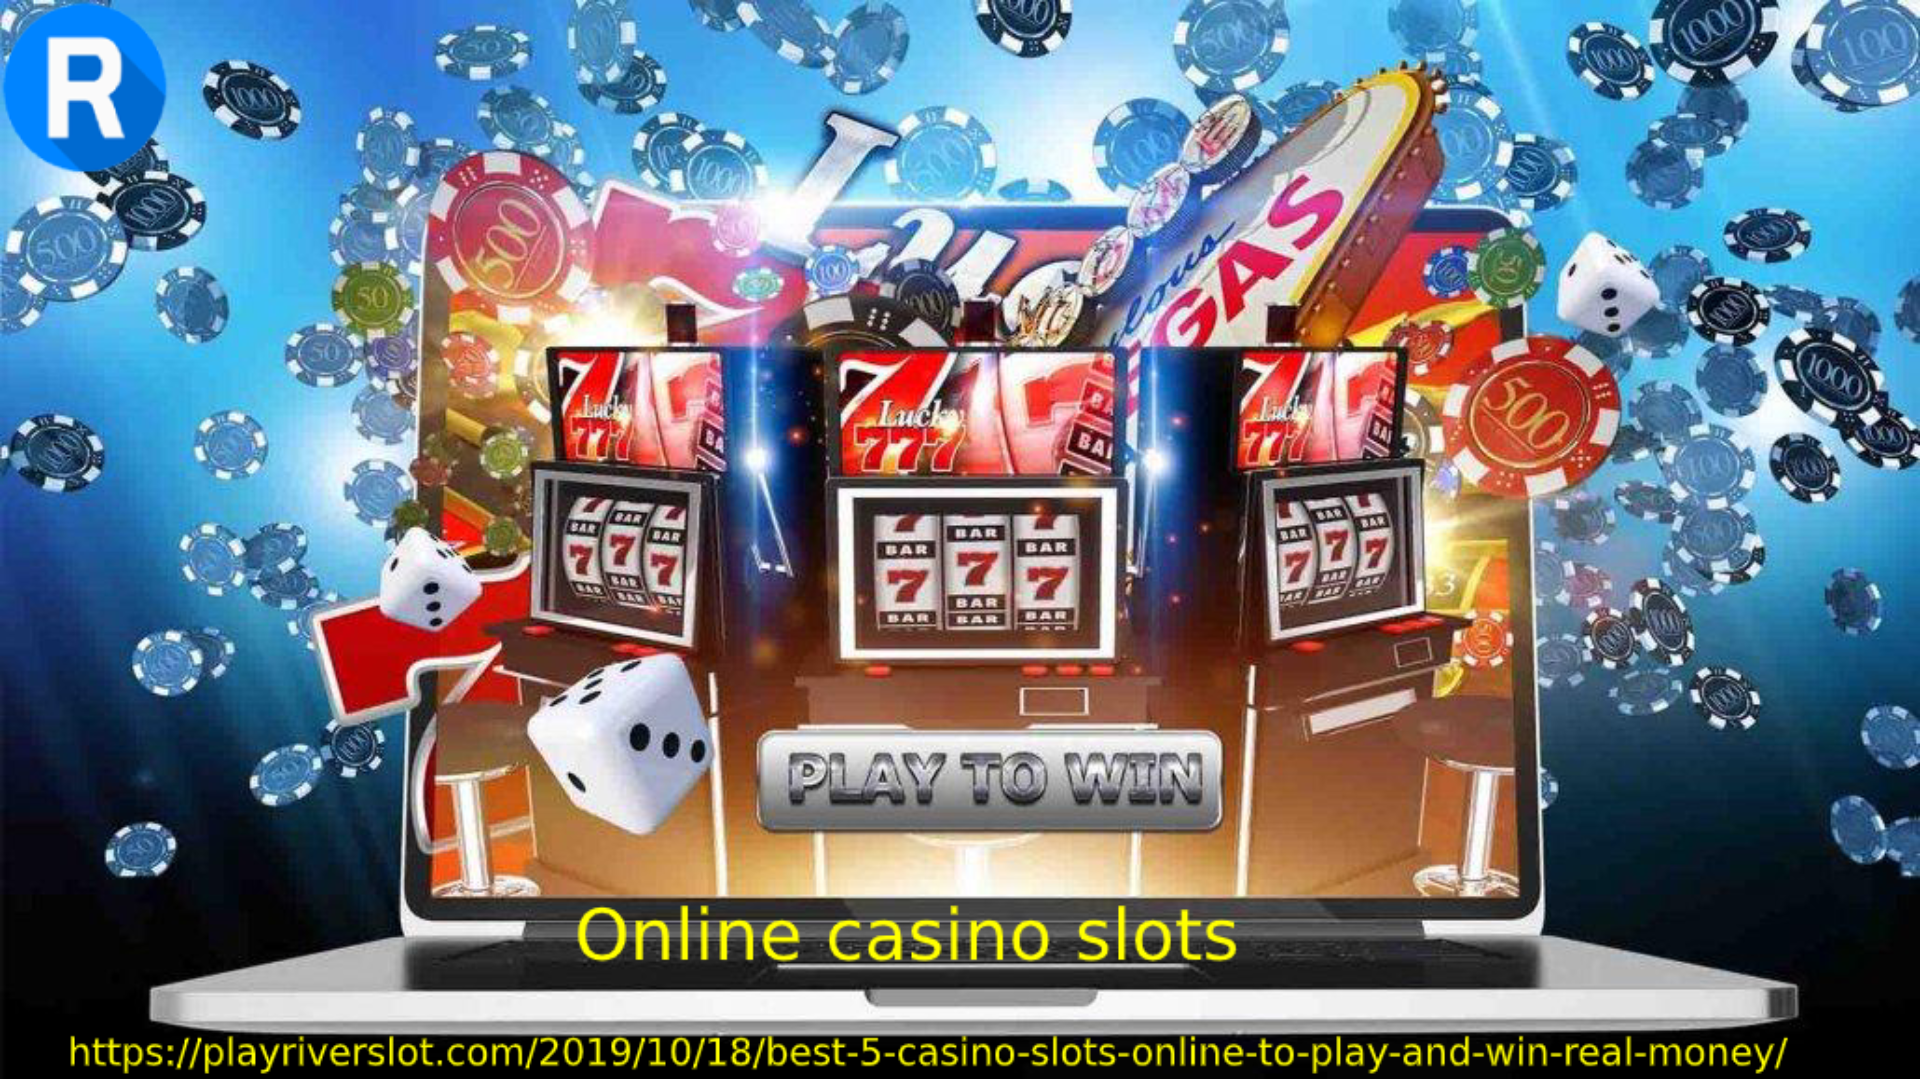 Casinobest 5 Casino Slots Online To Play And Win Real Money By